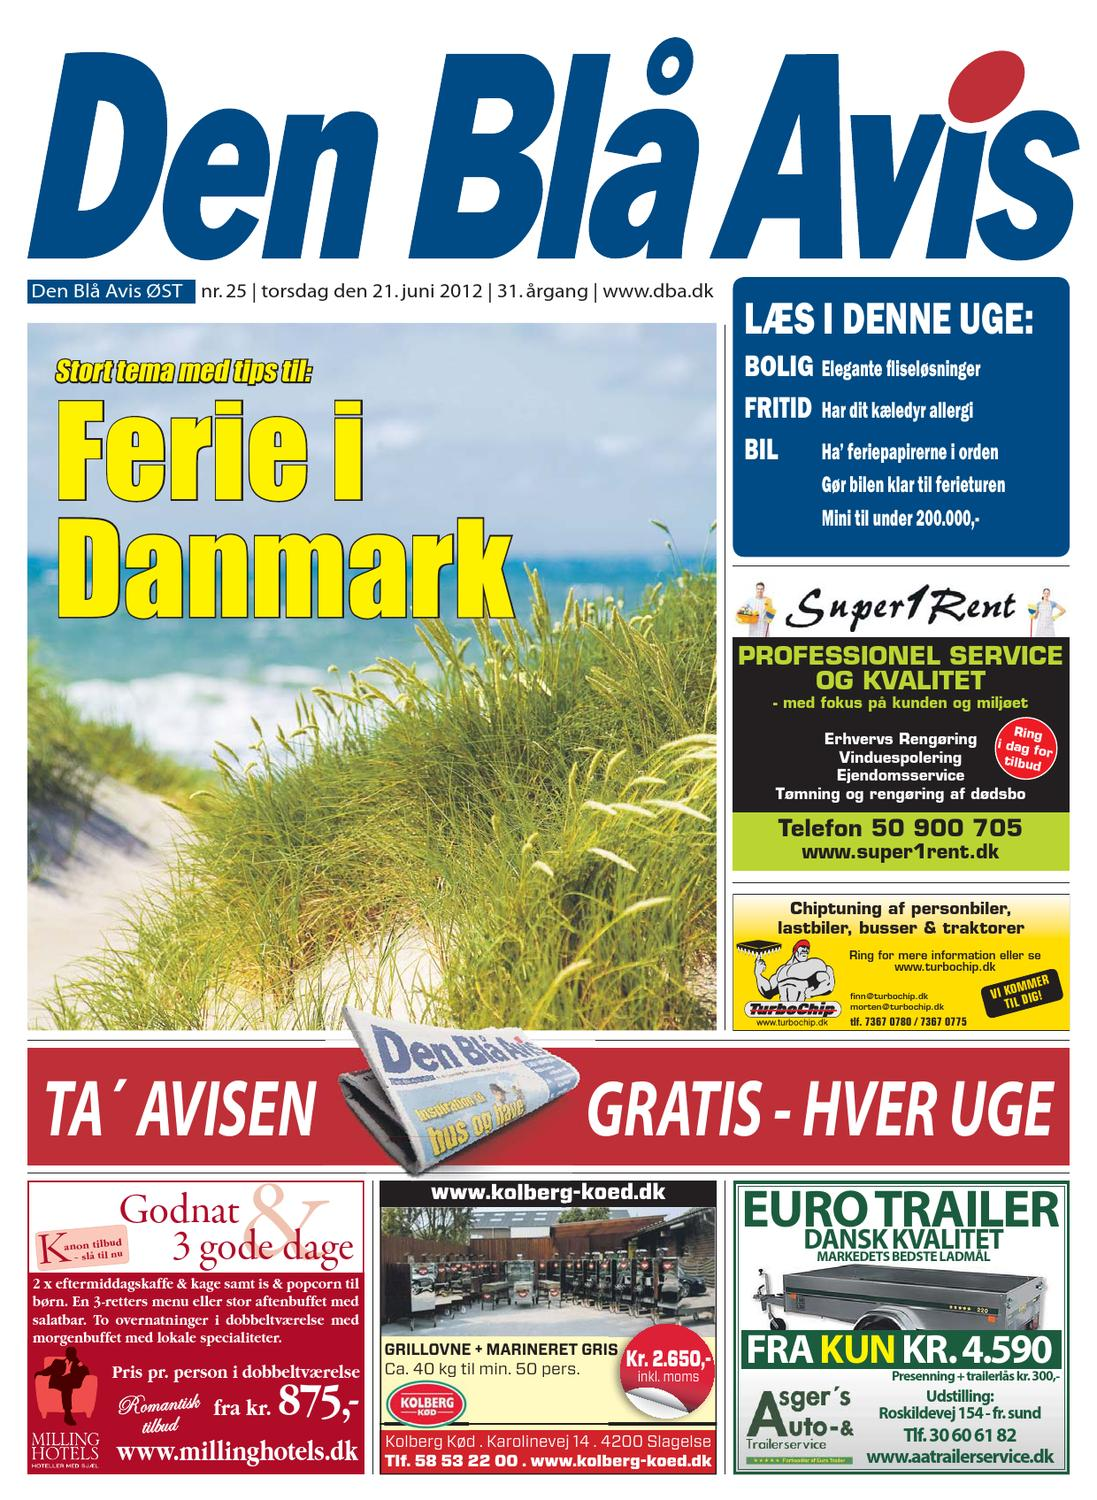 9d76d9577647 Den Blå Avis - ØST - 25-2012 by Grafik DBA - issuu